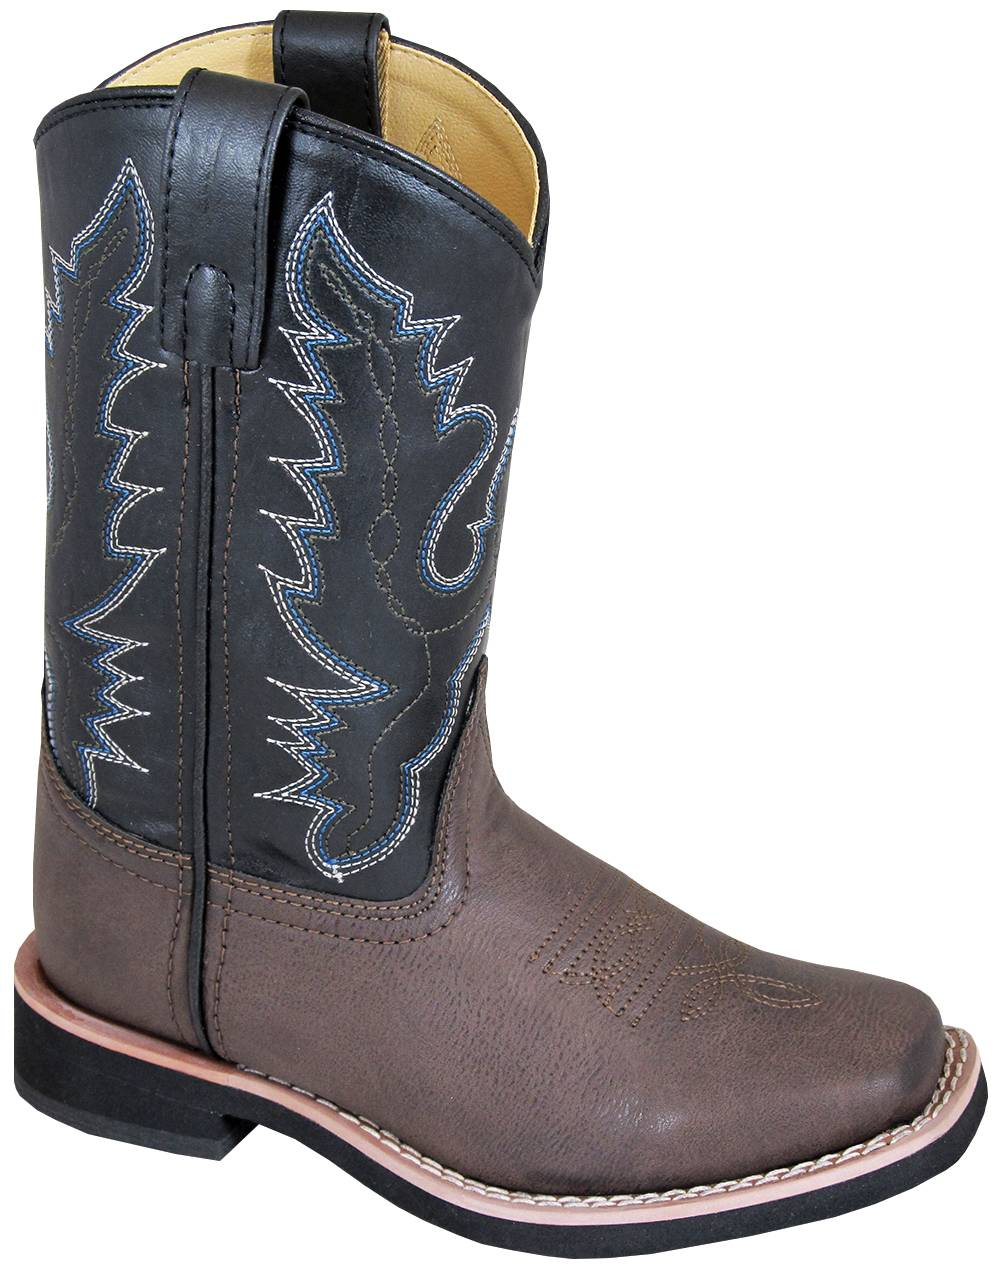 Smoky Mountain Tyler Boots - Children's - Brown/Black